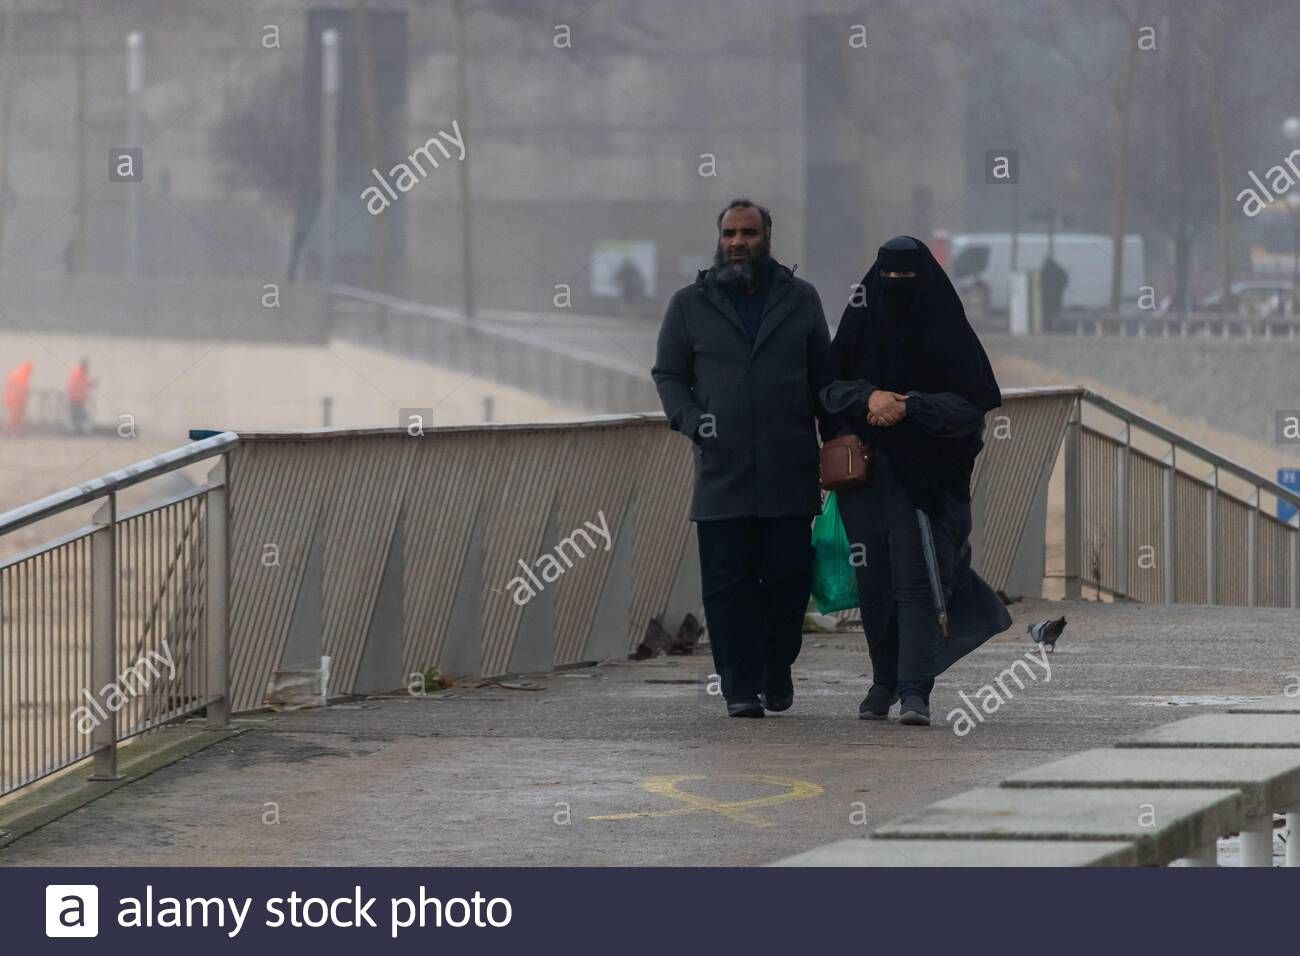 Pin By Sredfgtf Wqaesrdt On Niqab In 2020 Barcelona Beach Couples Walking Muslim Couples